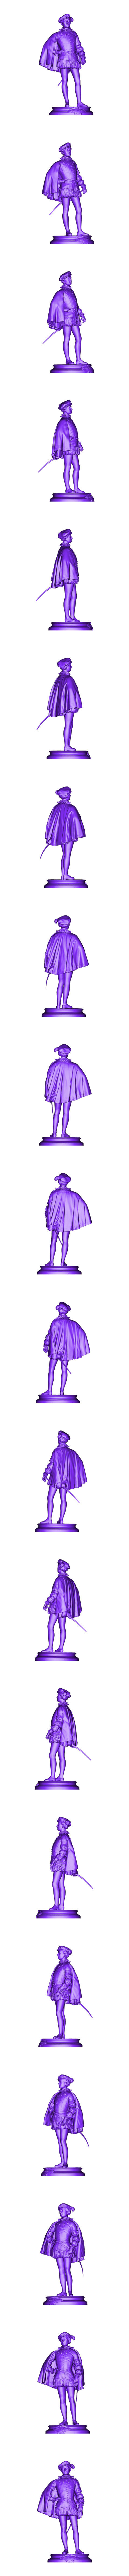 Statue_Delaunay_1M_Poly1.stl Download free STL file Delaunay Photosculpture • 3D printing template, ThreeDScans